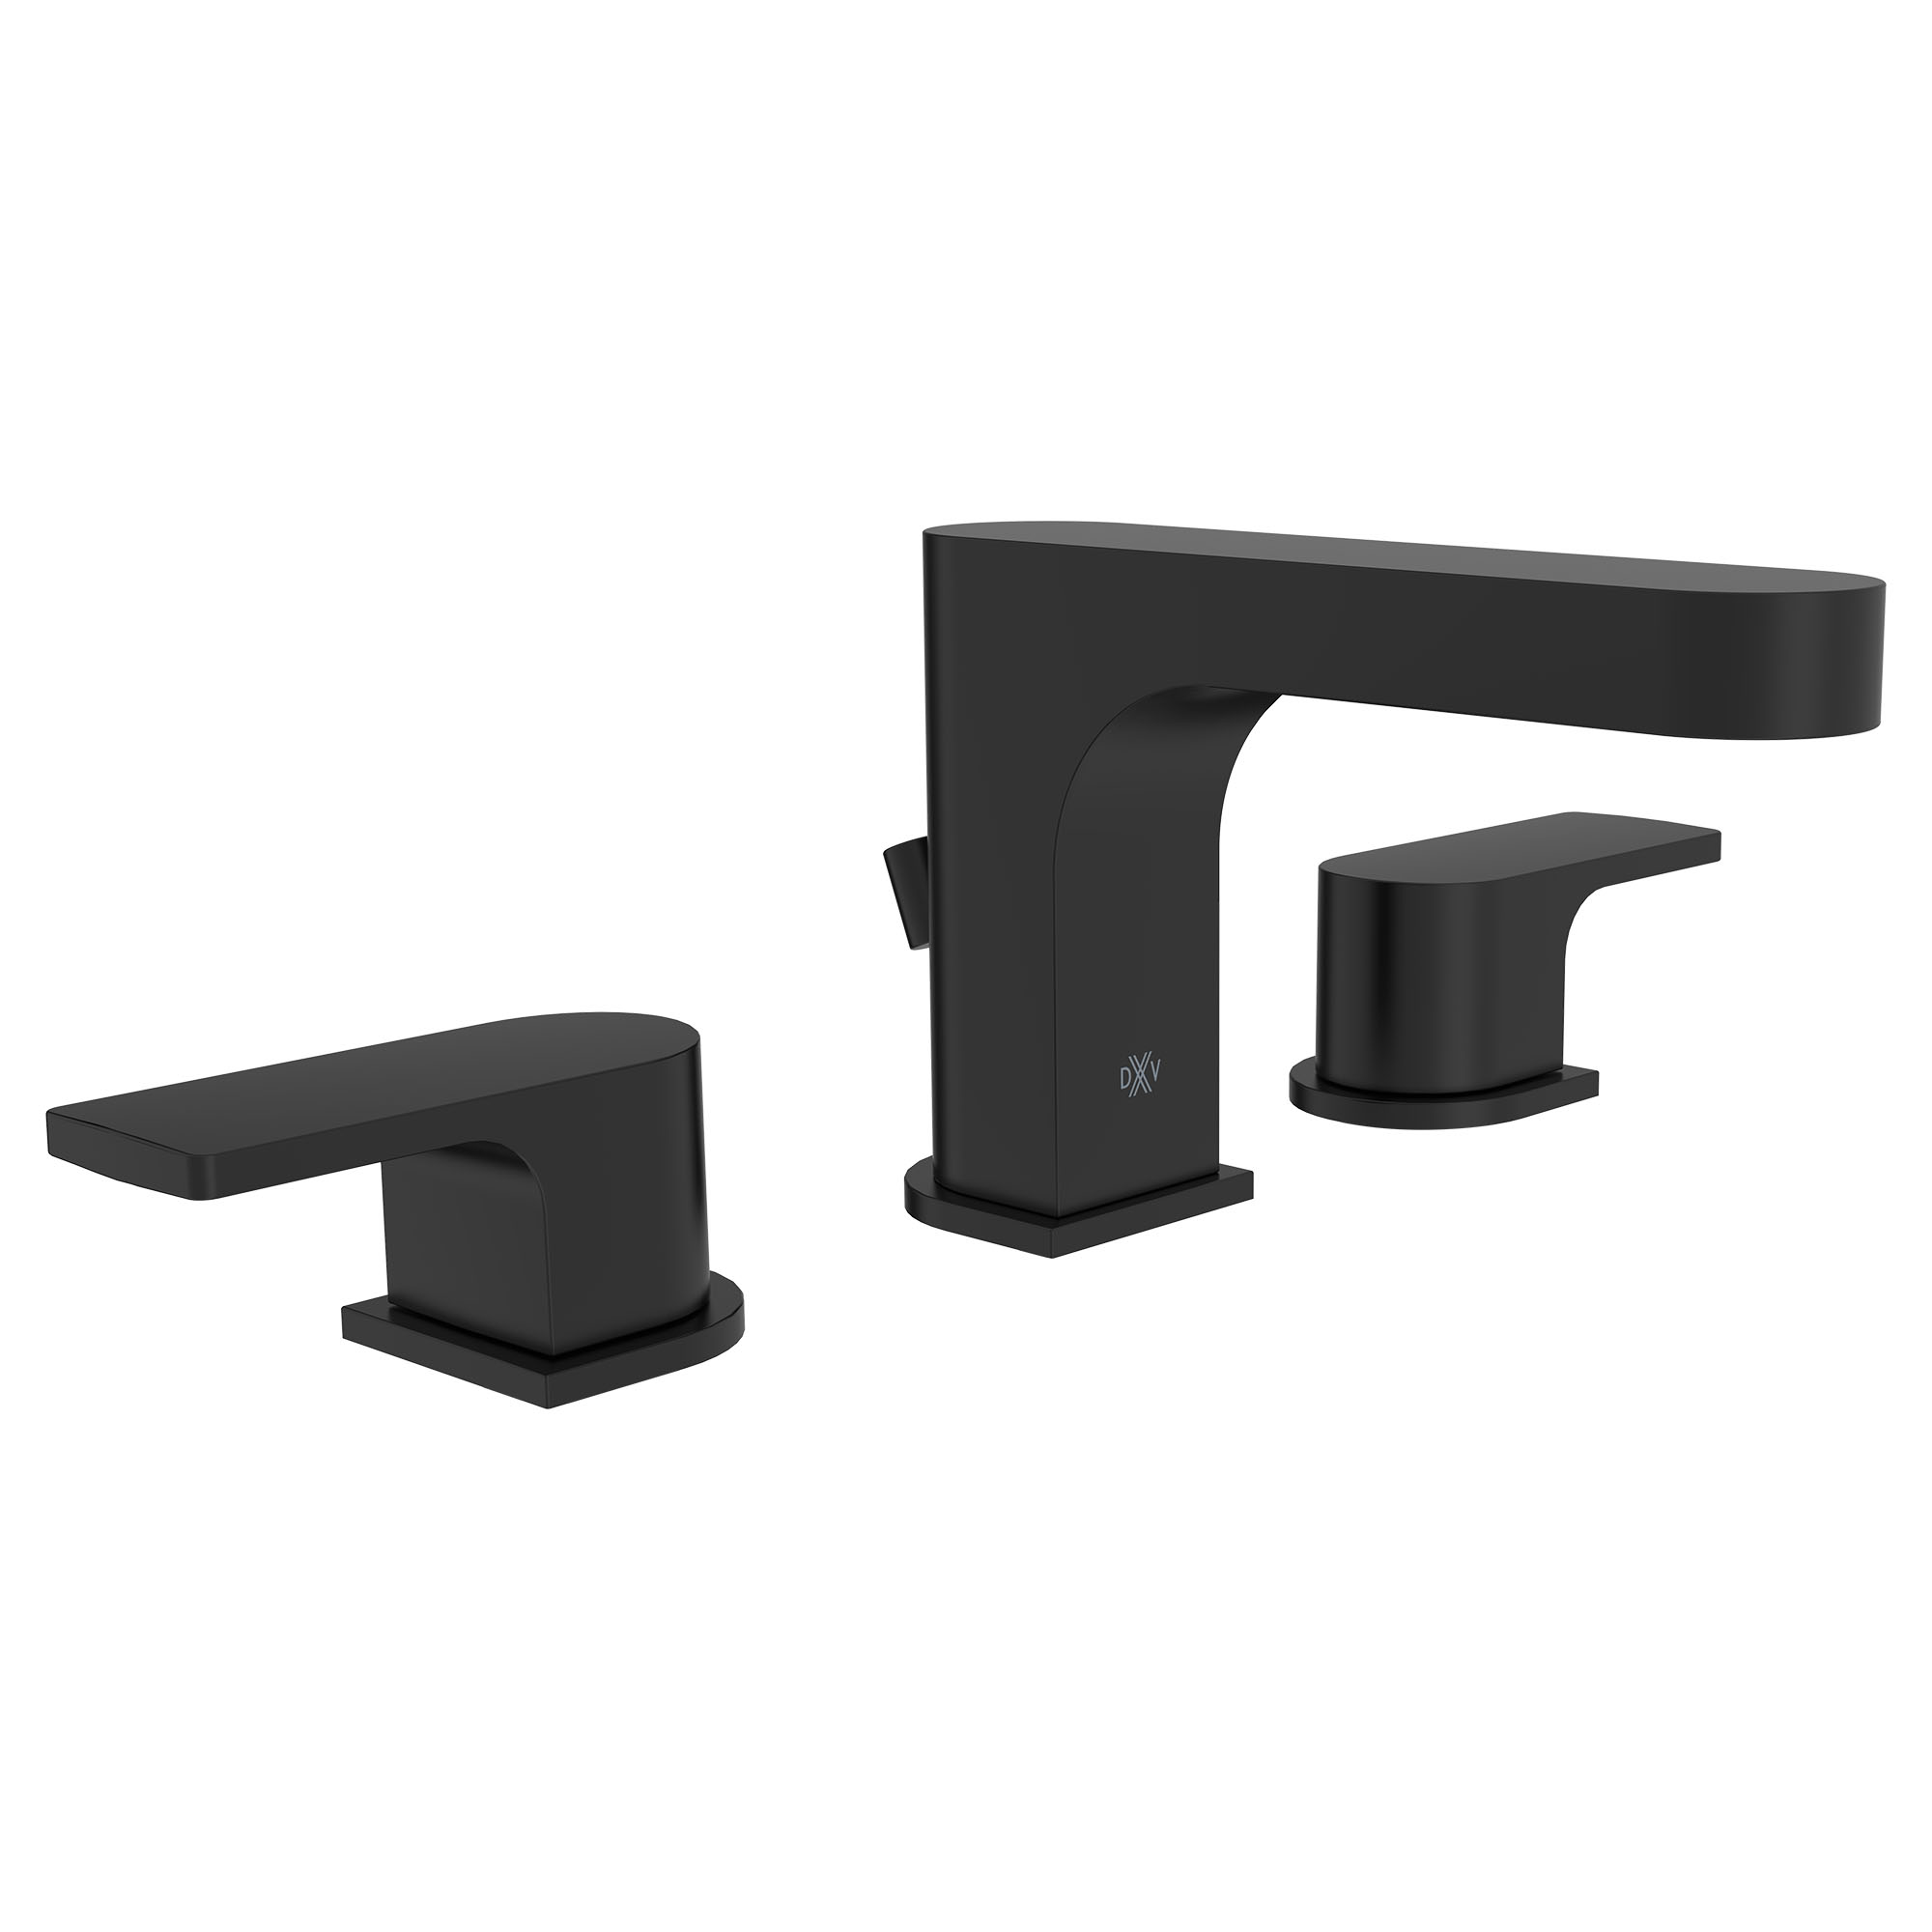 Equility Widespread Bathroom Faucet | DXV